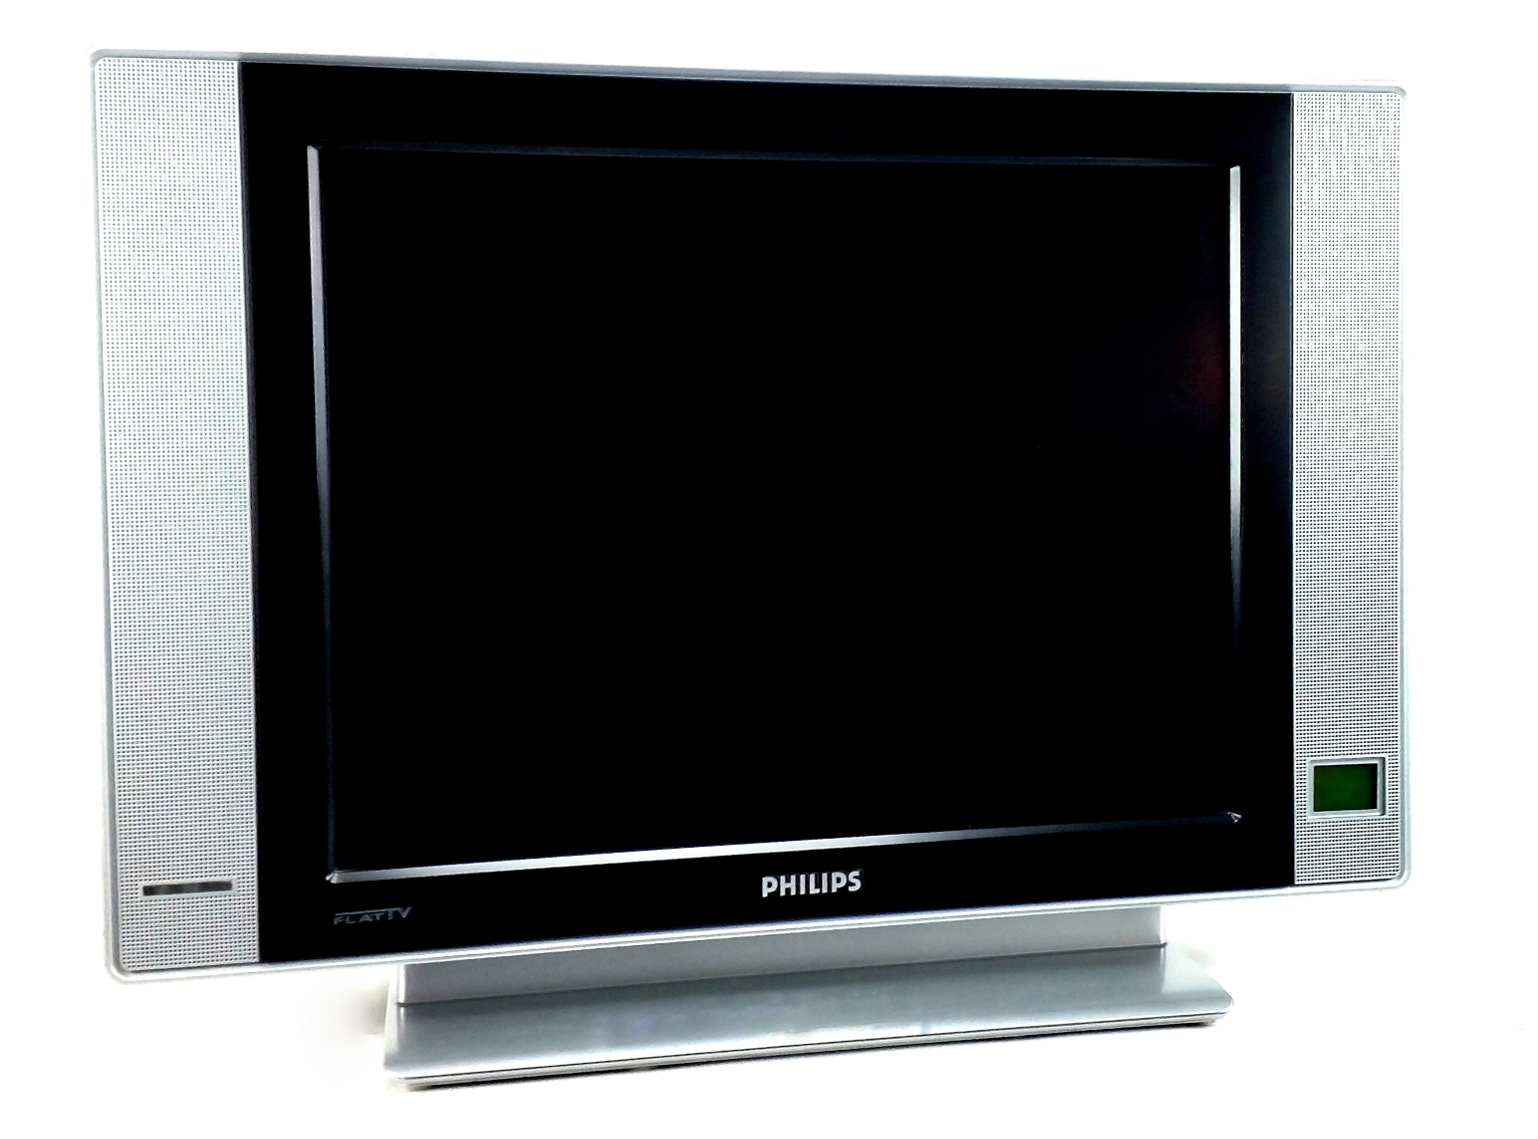 philips 20 51cm flat tv lcd fernseher chinch scart dvi s video ebay. Black Bedroom Furniture Sets. Home Design Ideas